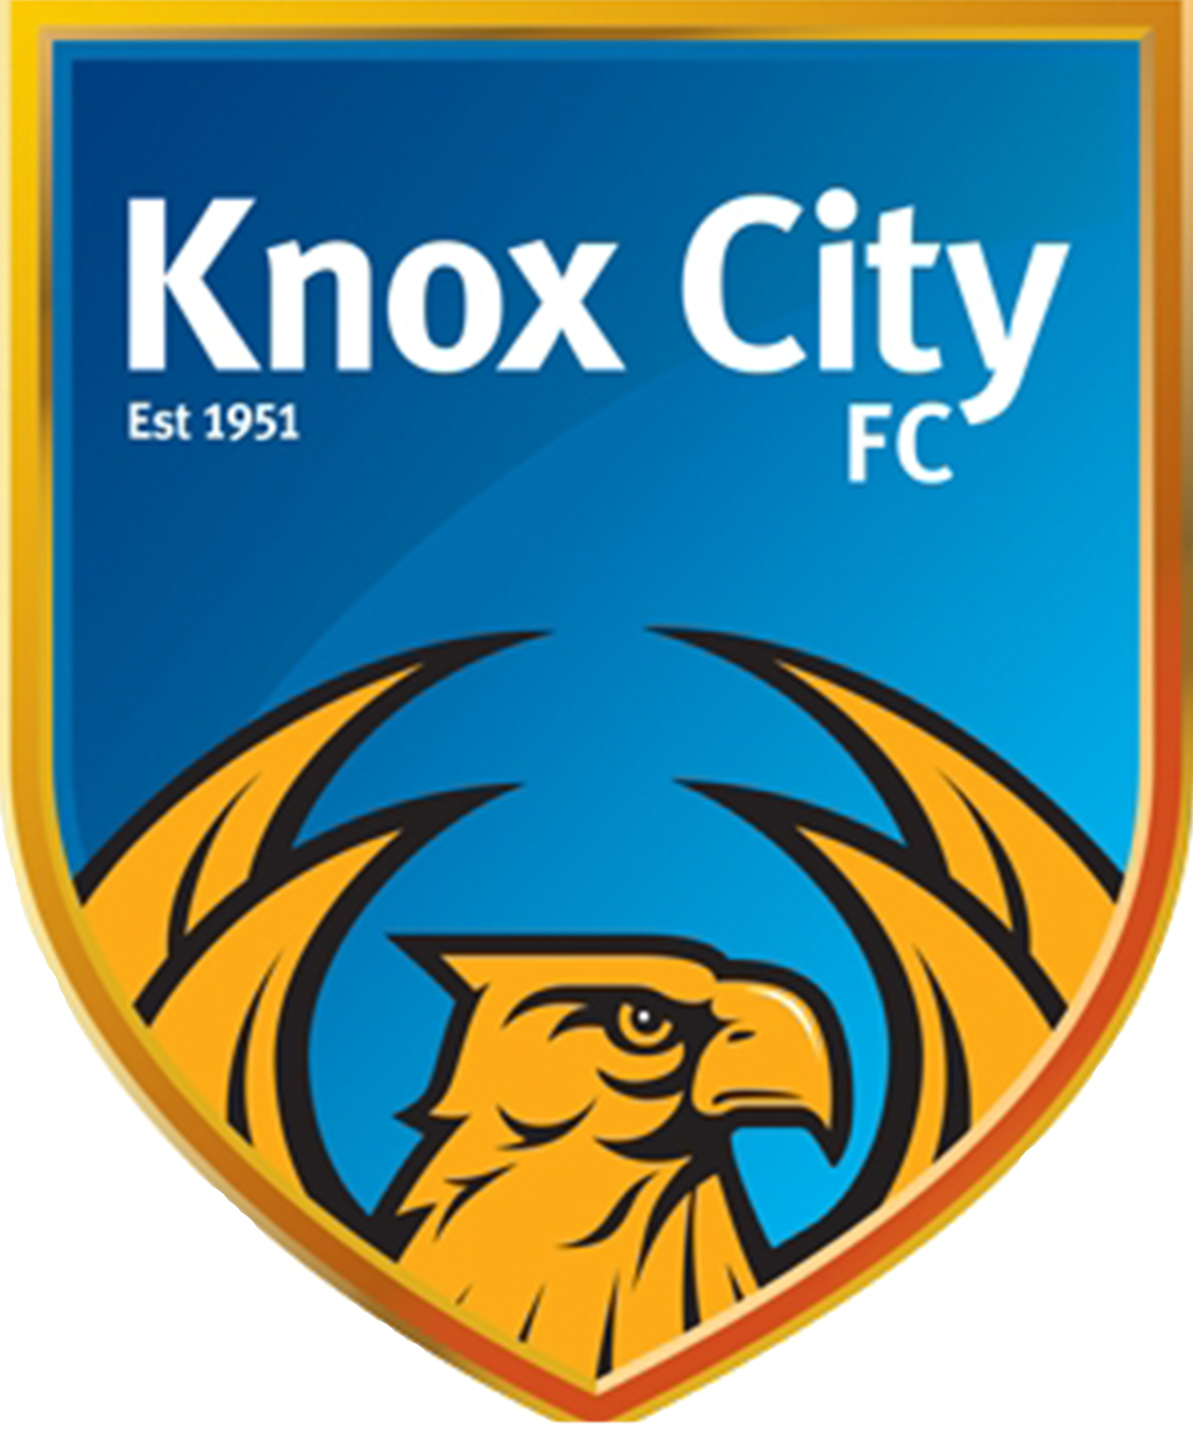 Knox City Football Club